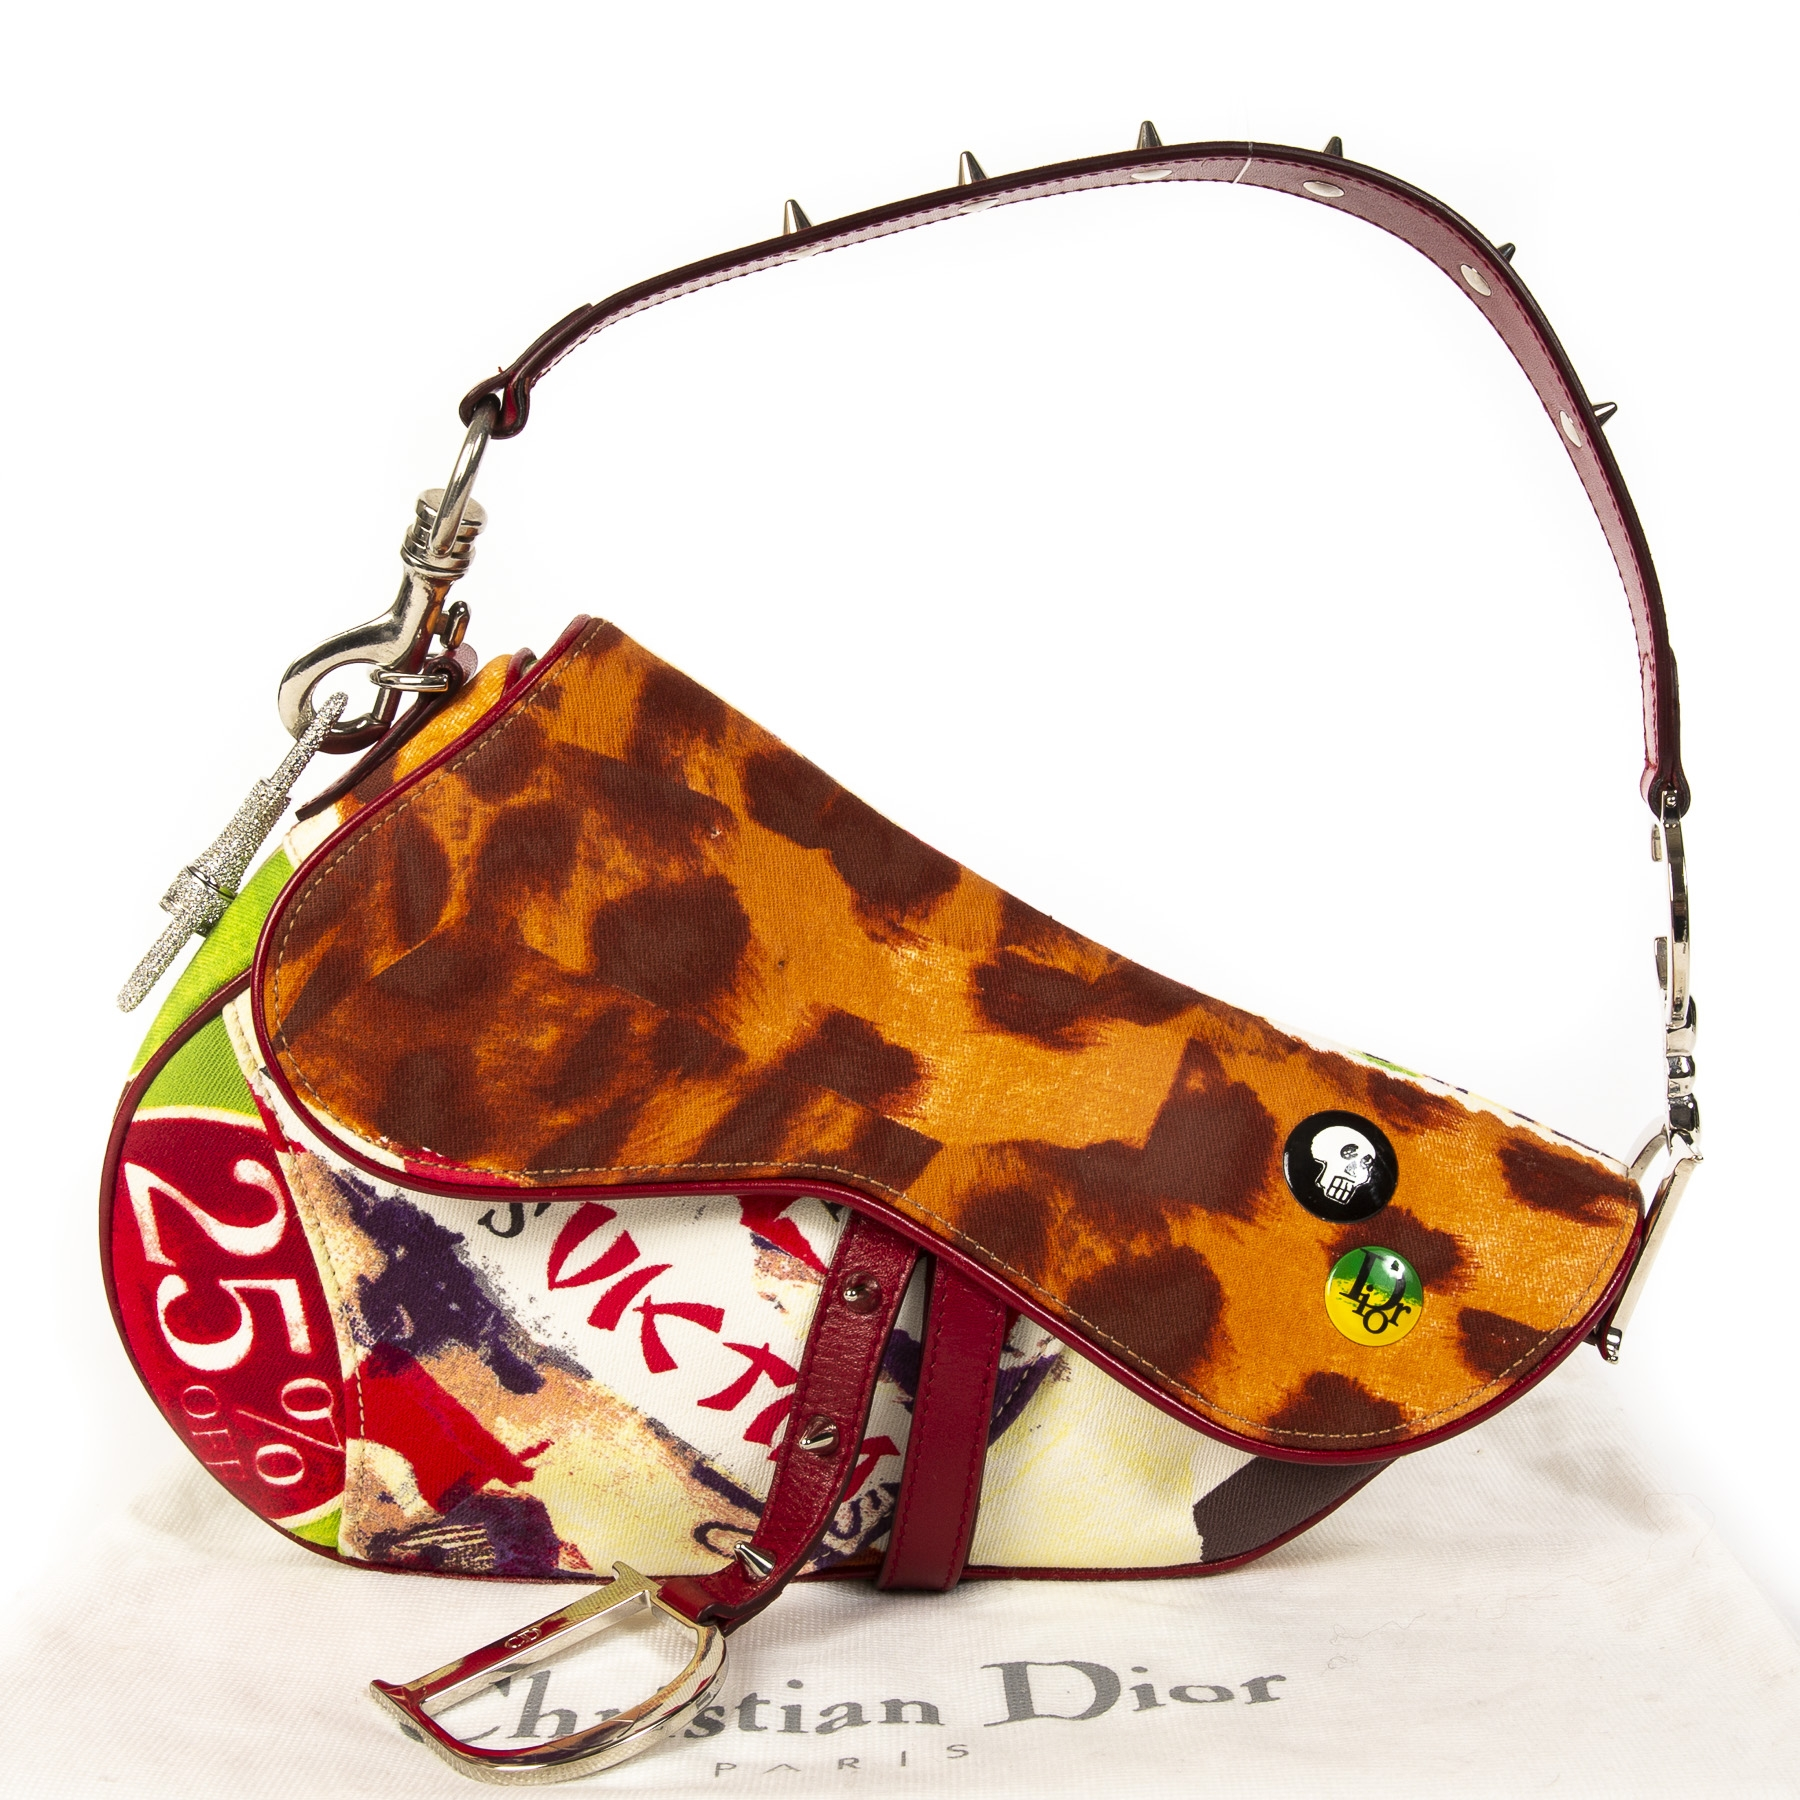 acheter en ligne seconde main Christian Dior Limited Edition Multicolor Victim Saddle Bag . koop veilig online tegen de beste prijs Christian Dior Limited Edition Multicolor Victim Saddle Bag. shop safe online Christian Dior Limited Edition Multicolor.